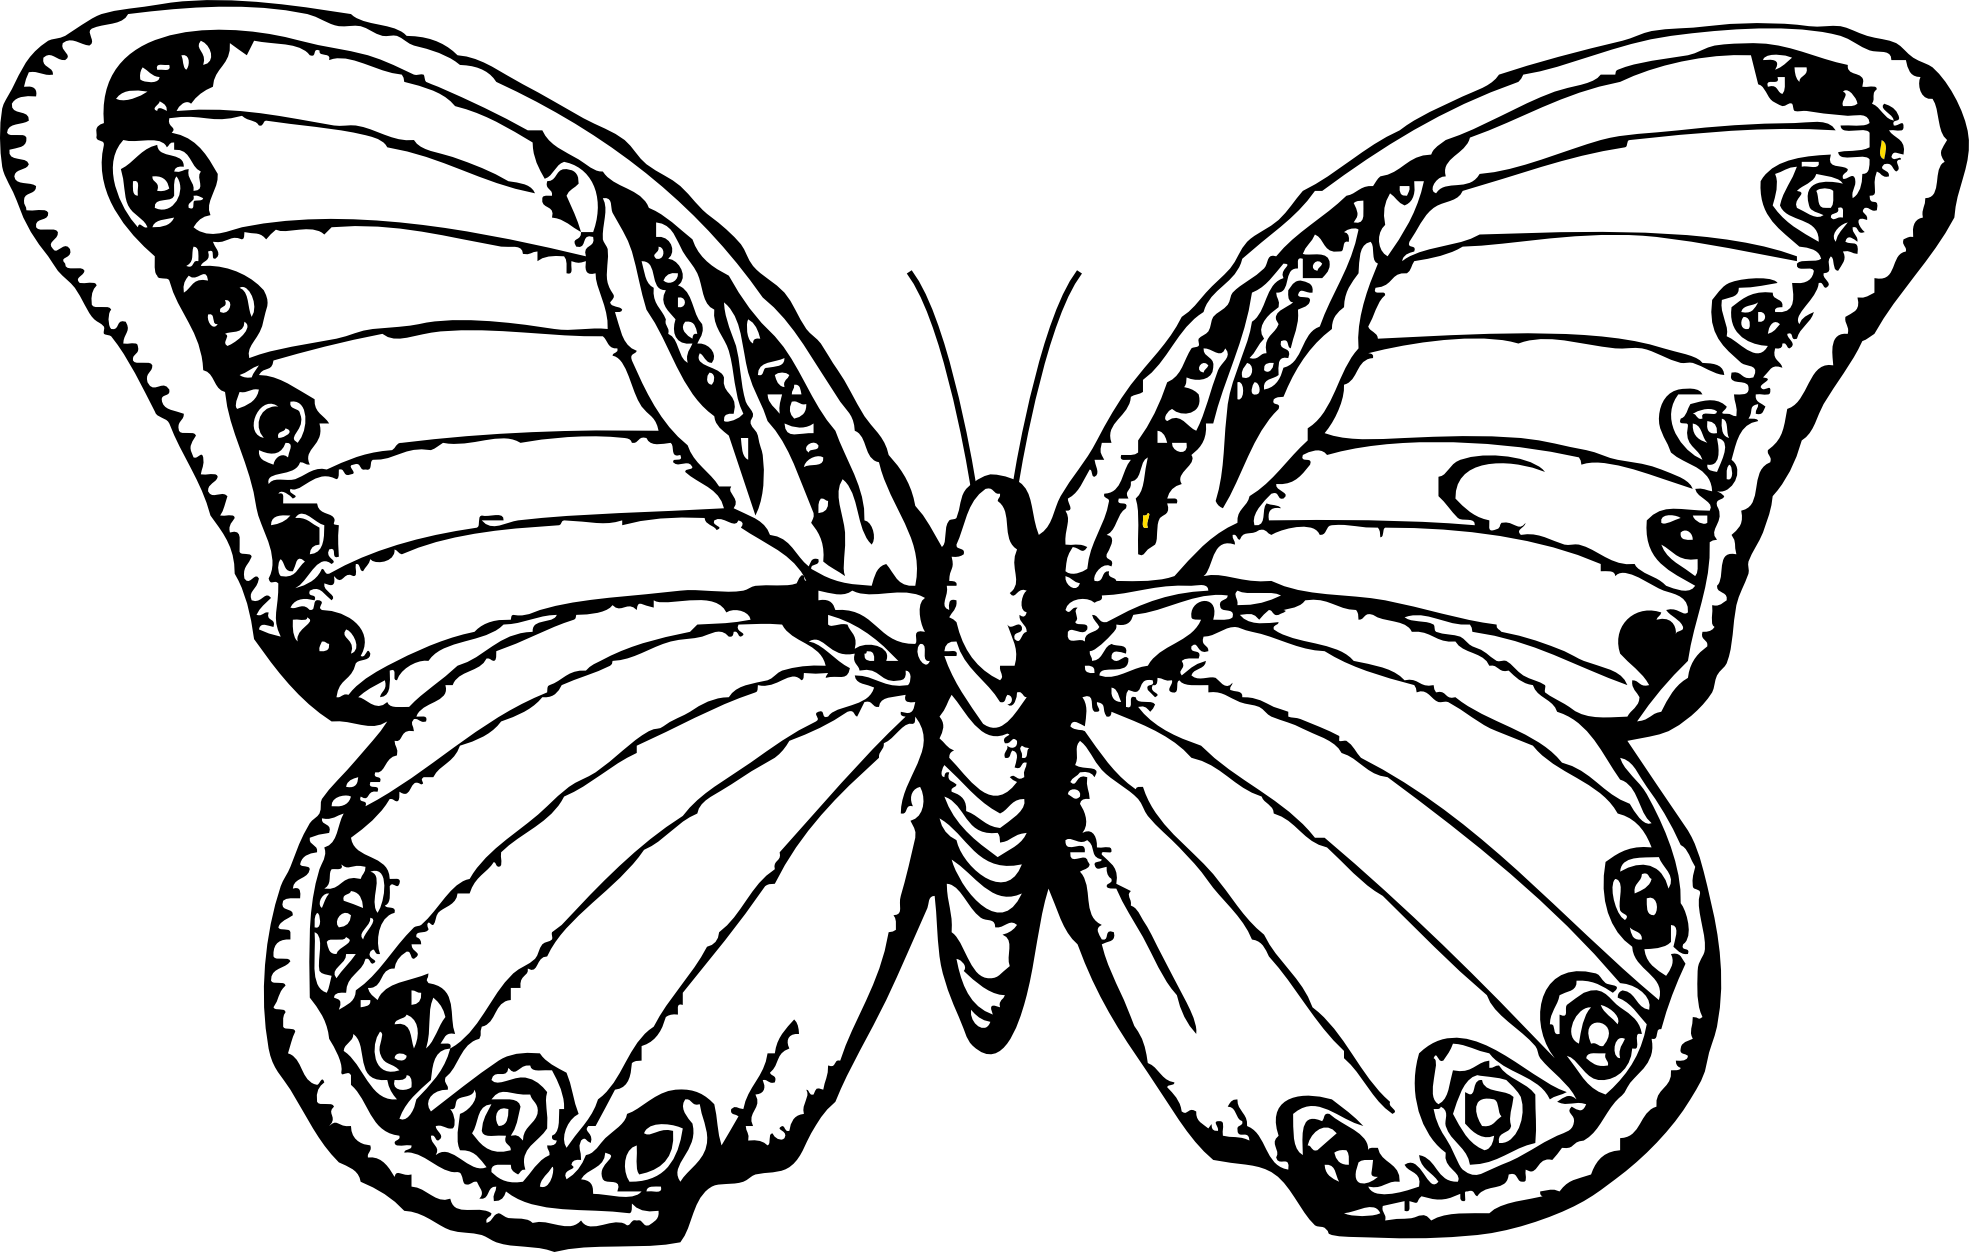 Clipartistfo Butterfly 25 Black White Line Art Svg Quilling